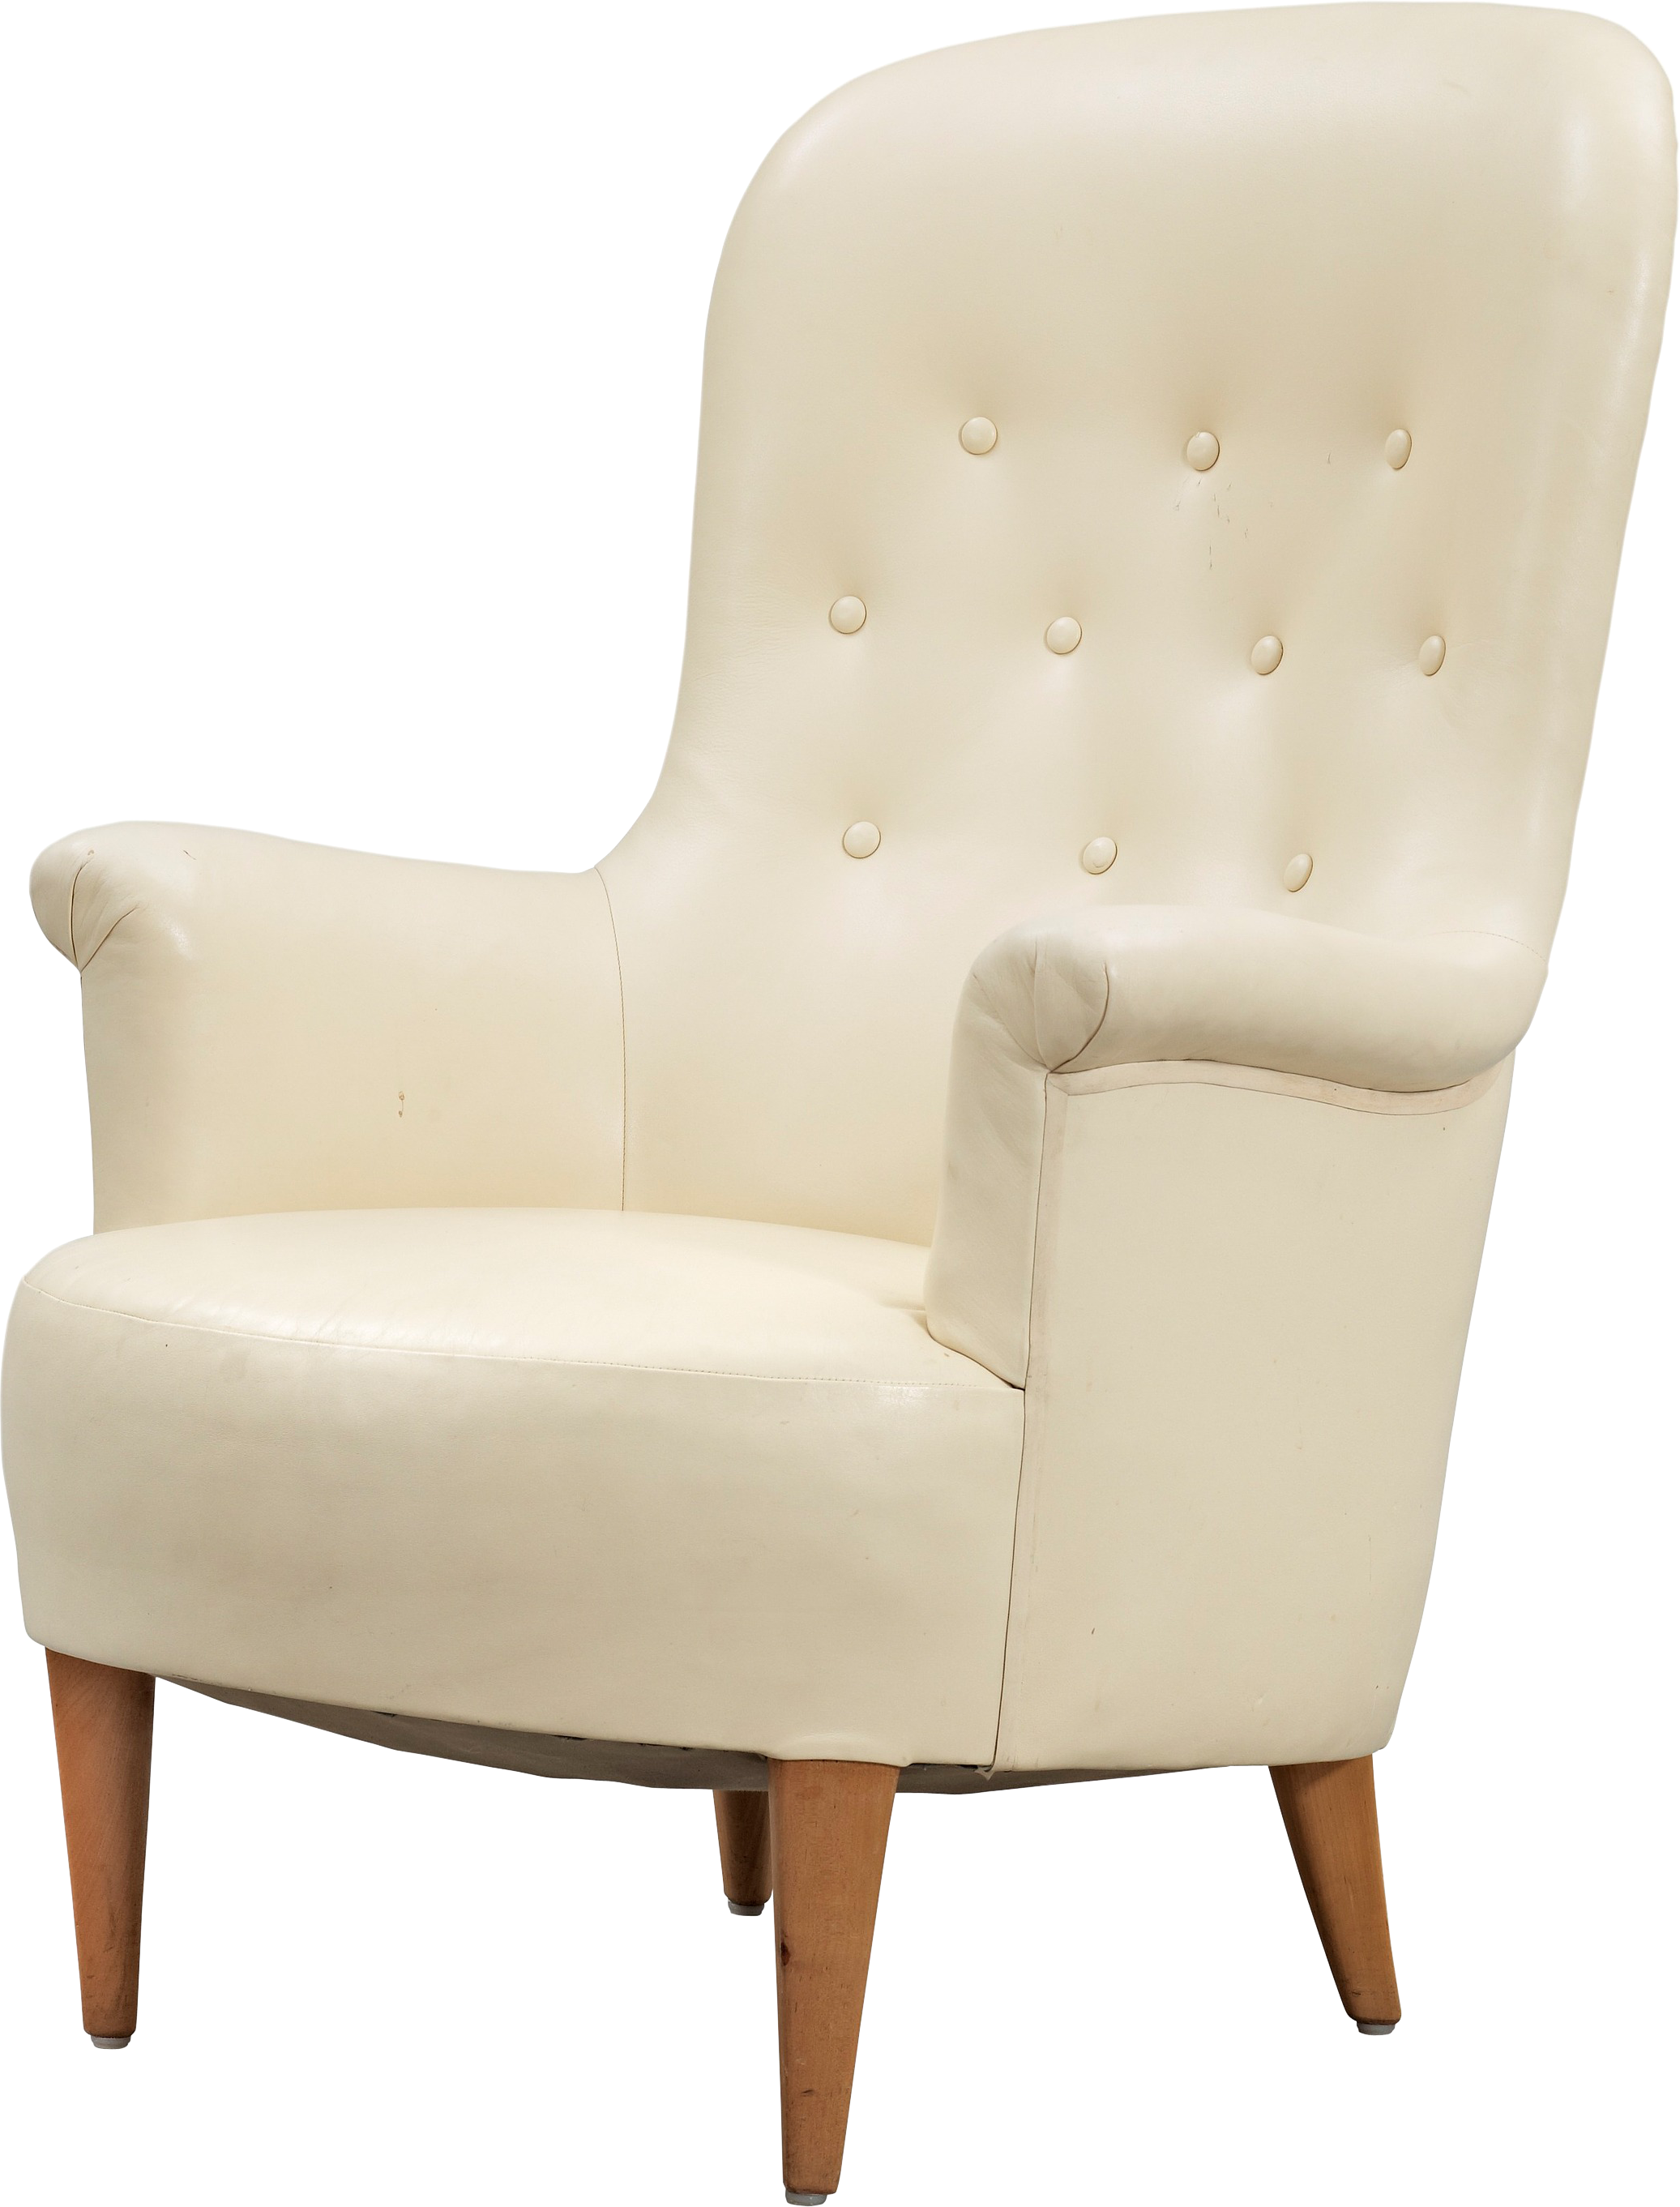 Armchair Png Image Armchair White Armchair Sofa